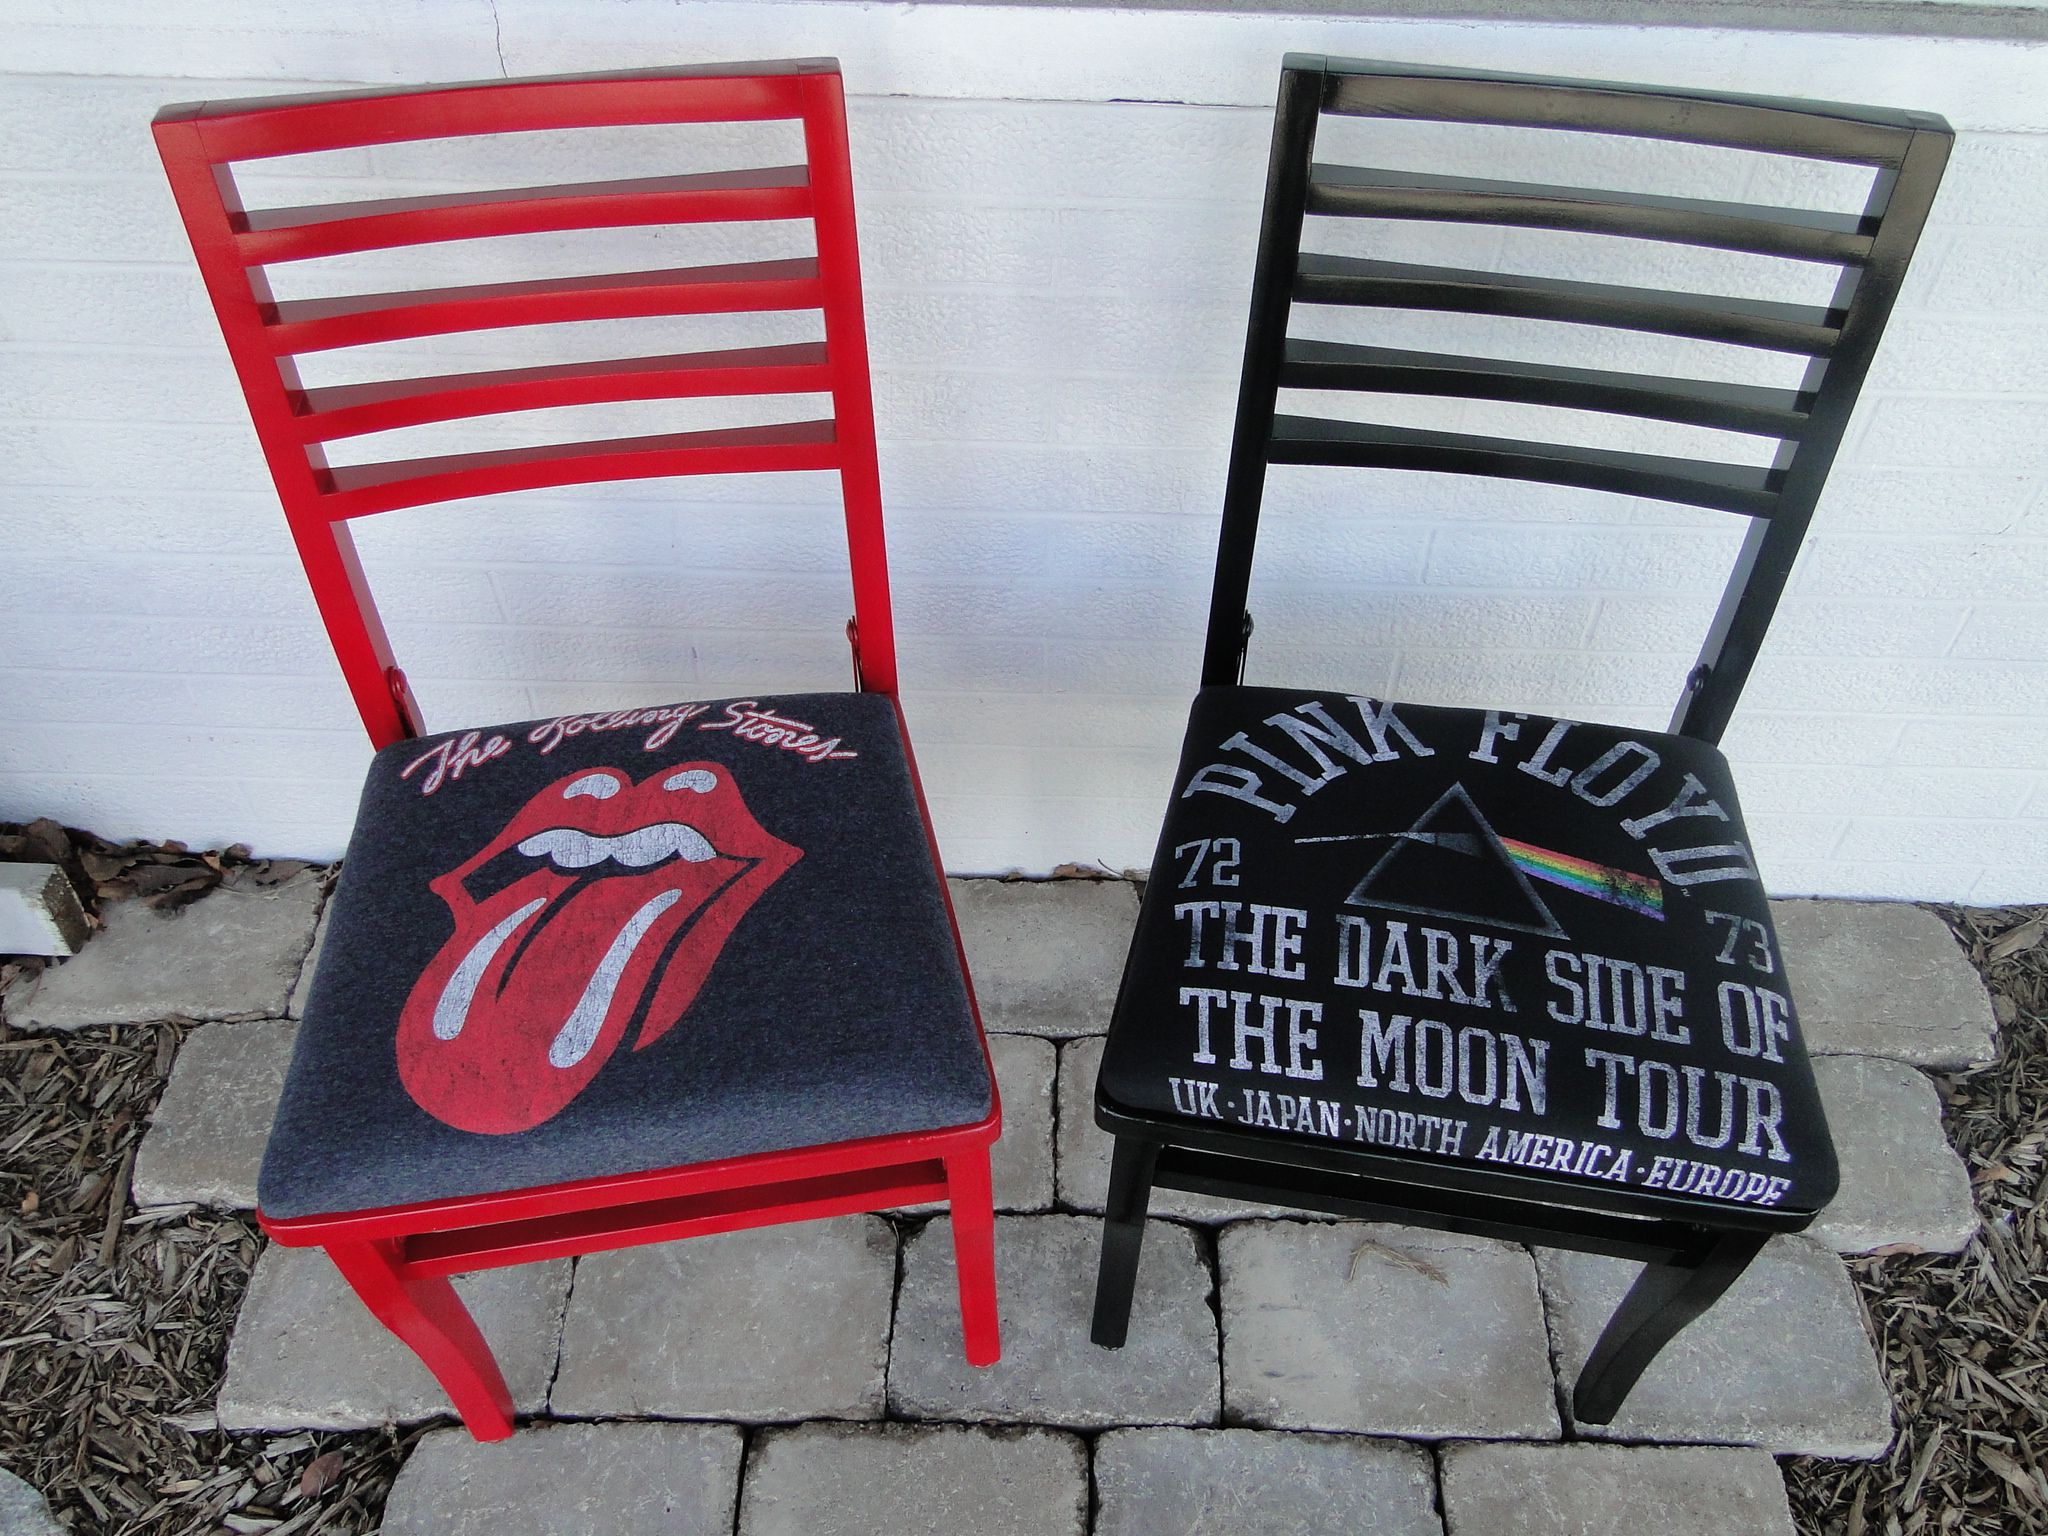 Reproduction Bedroom Furniture Rolling Stones And Pink Floyd Chairs Reupholstered In Classic